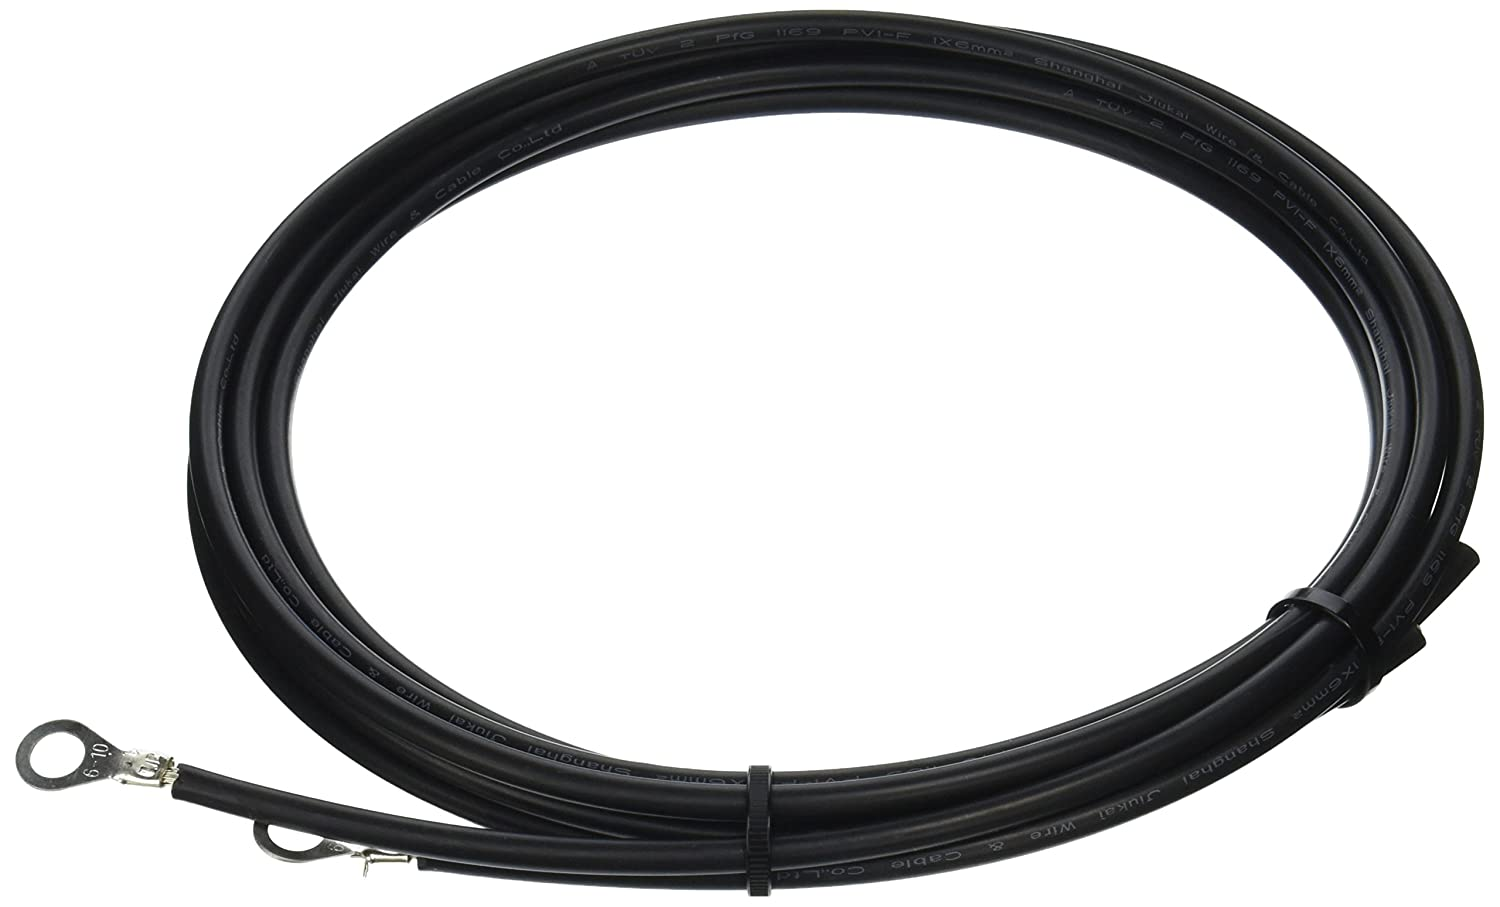 8 AWG Wire Copper Tray Cable   Connect Charge Controller and Battery RNG-TRAYCB-16FT-8 RENOGY 16ft